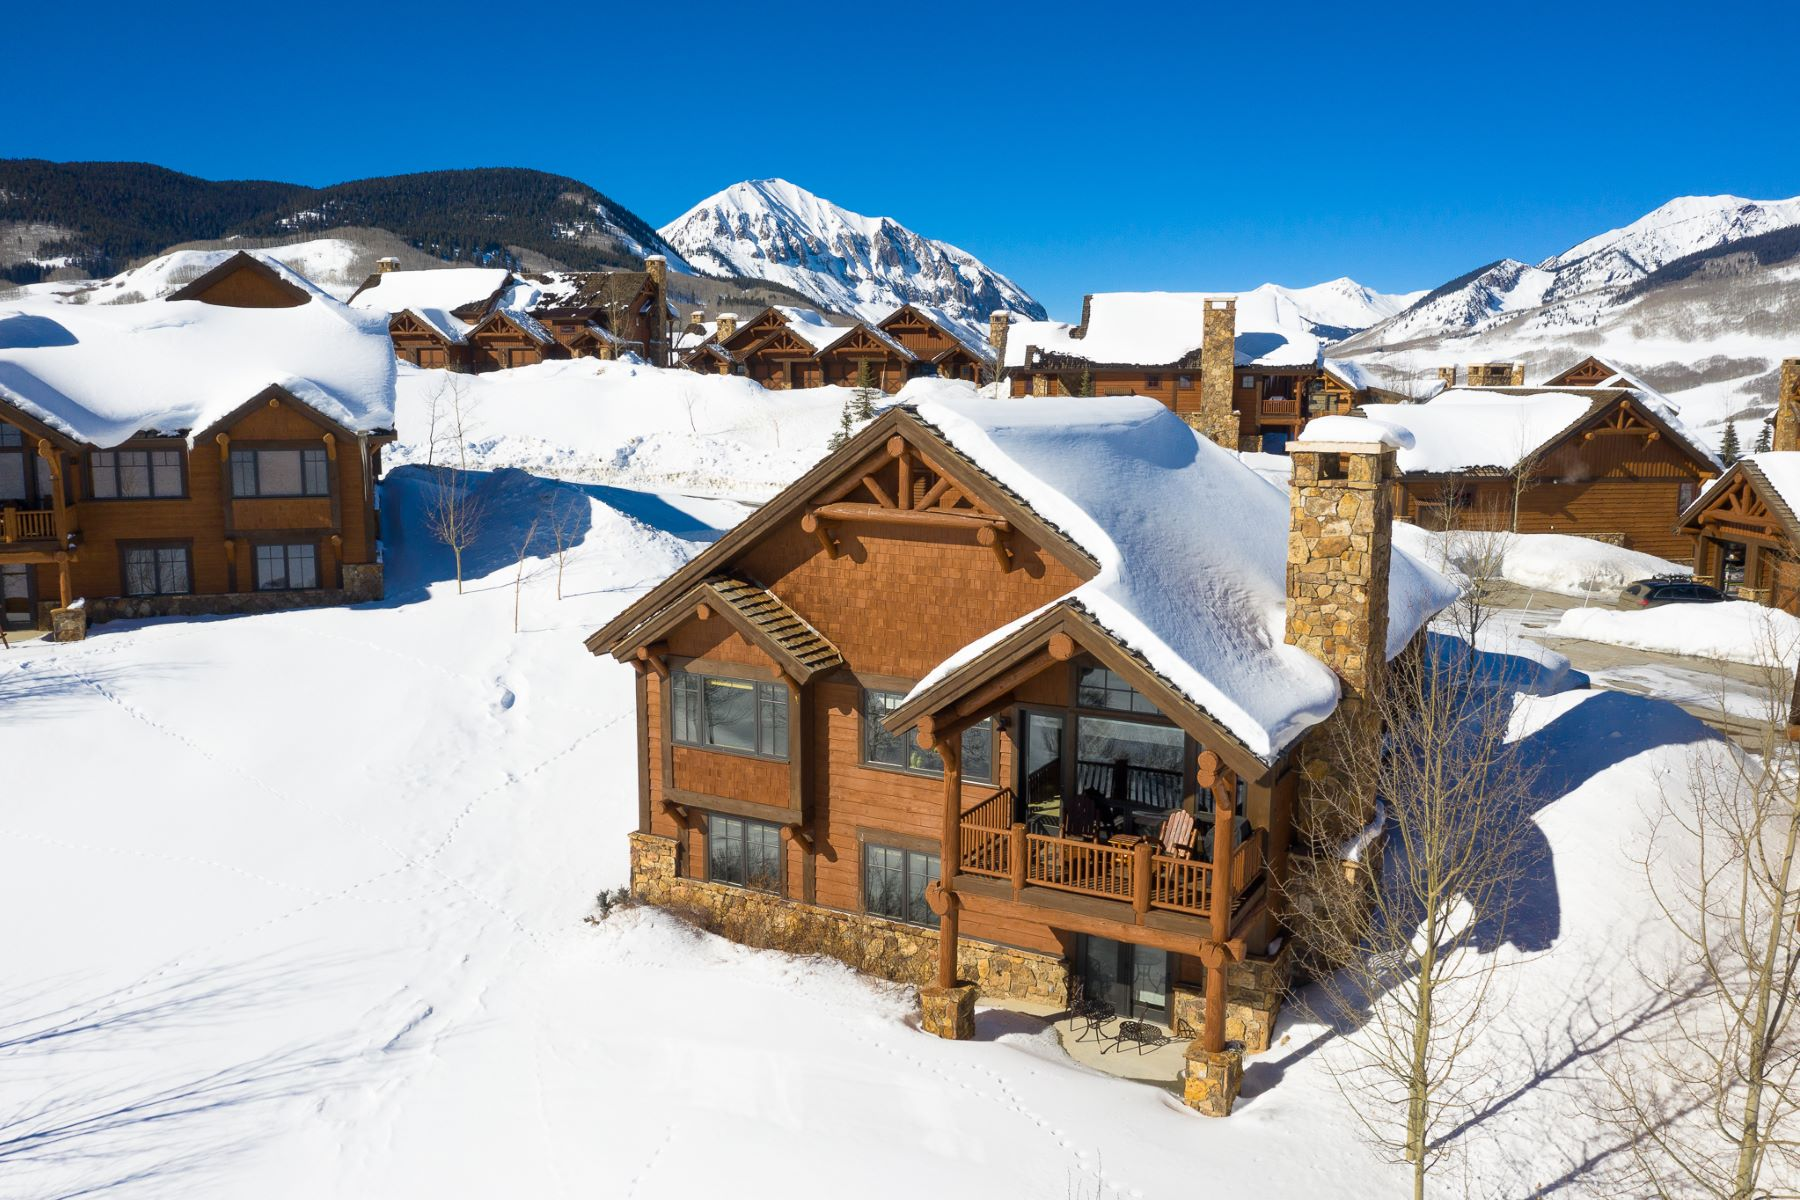 Single Family Homes for Sale at 26 Appaloosa Wildhorse at Prospect 26 Appaloosa Mount Crested Butte, Colorado 81225 United States